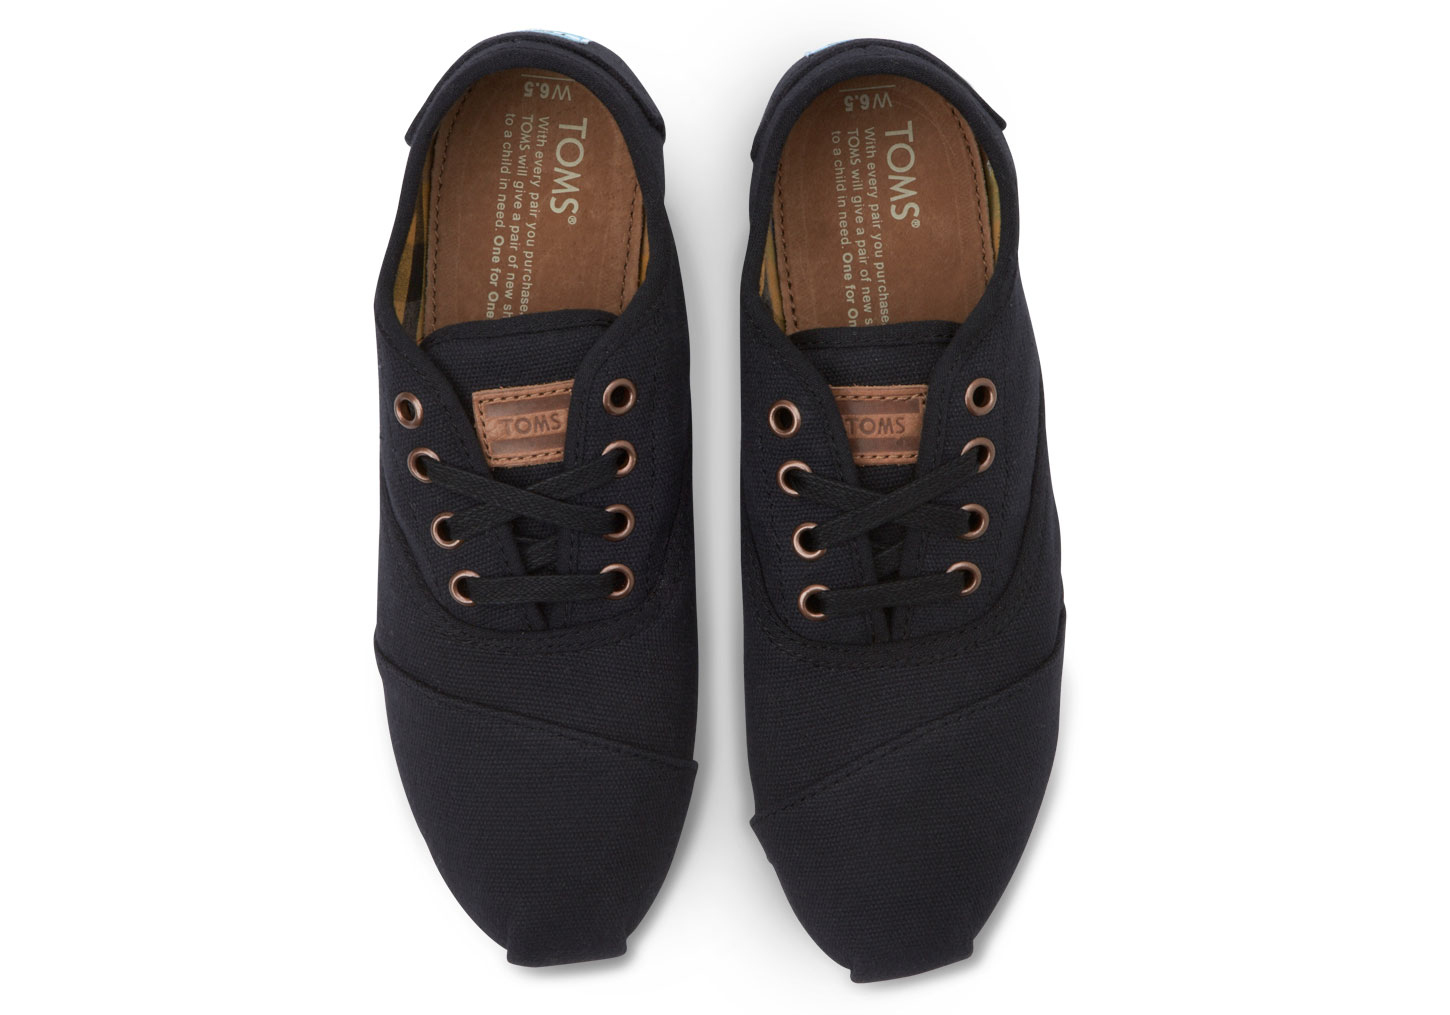 75a553e70fd3 Lyst - TOMS Black Canvas Women s Cordones in Black